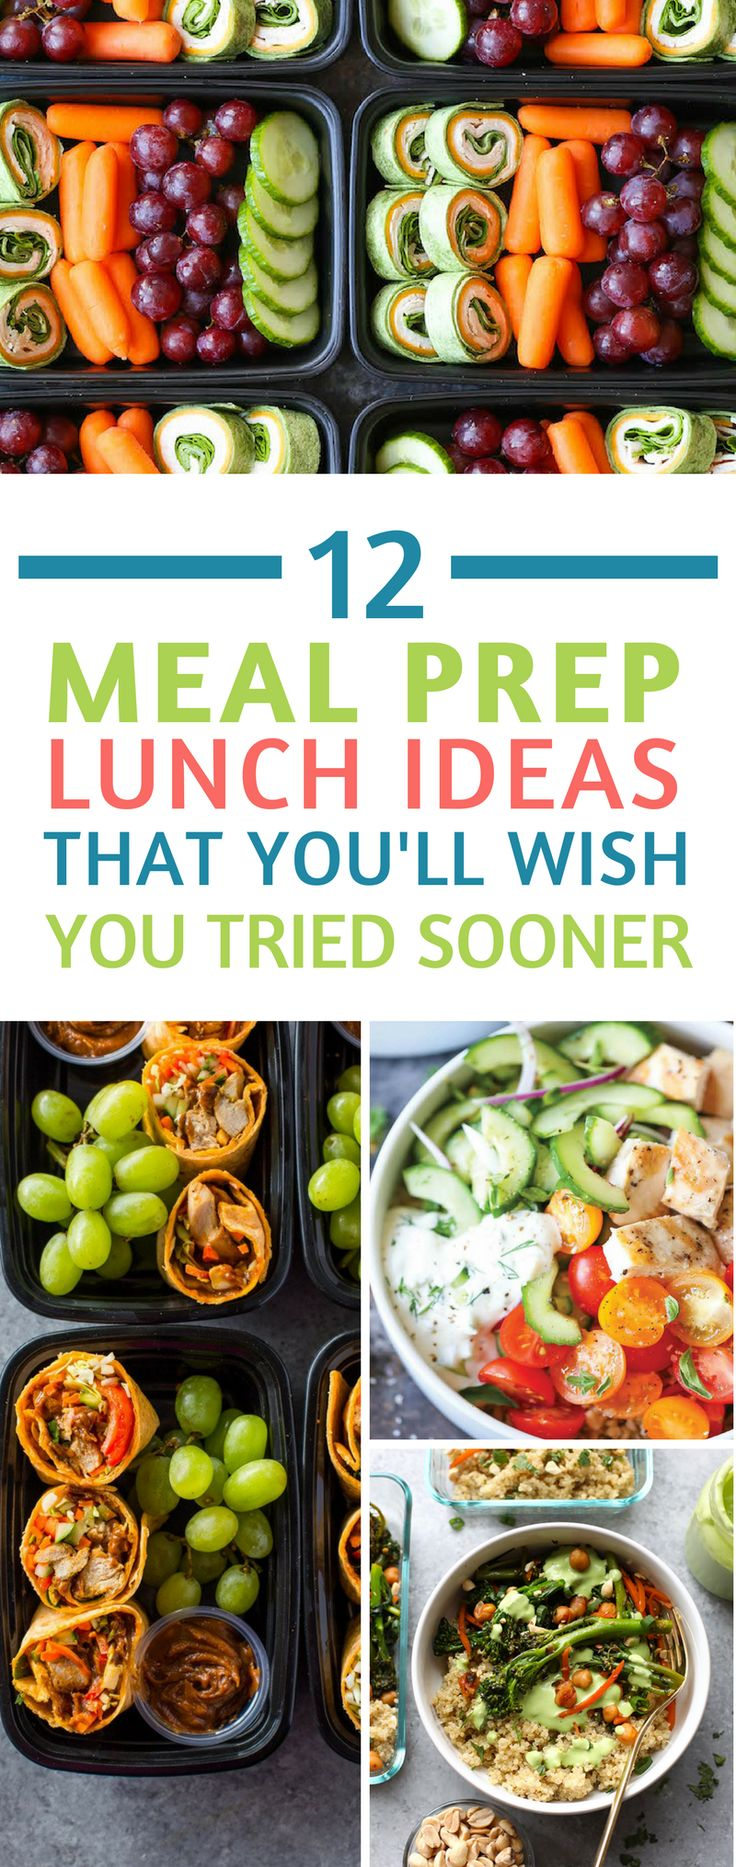 These meal prep lunch ideas are healthy, easy to make and so bright and colourful they're sure to make you smile! #mealprep #mealprepsundays #lunch #food